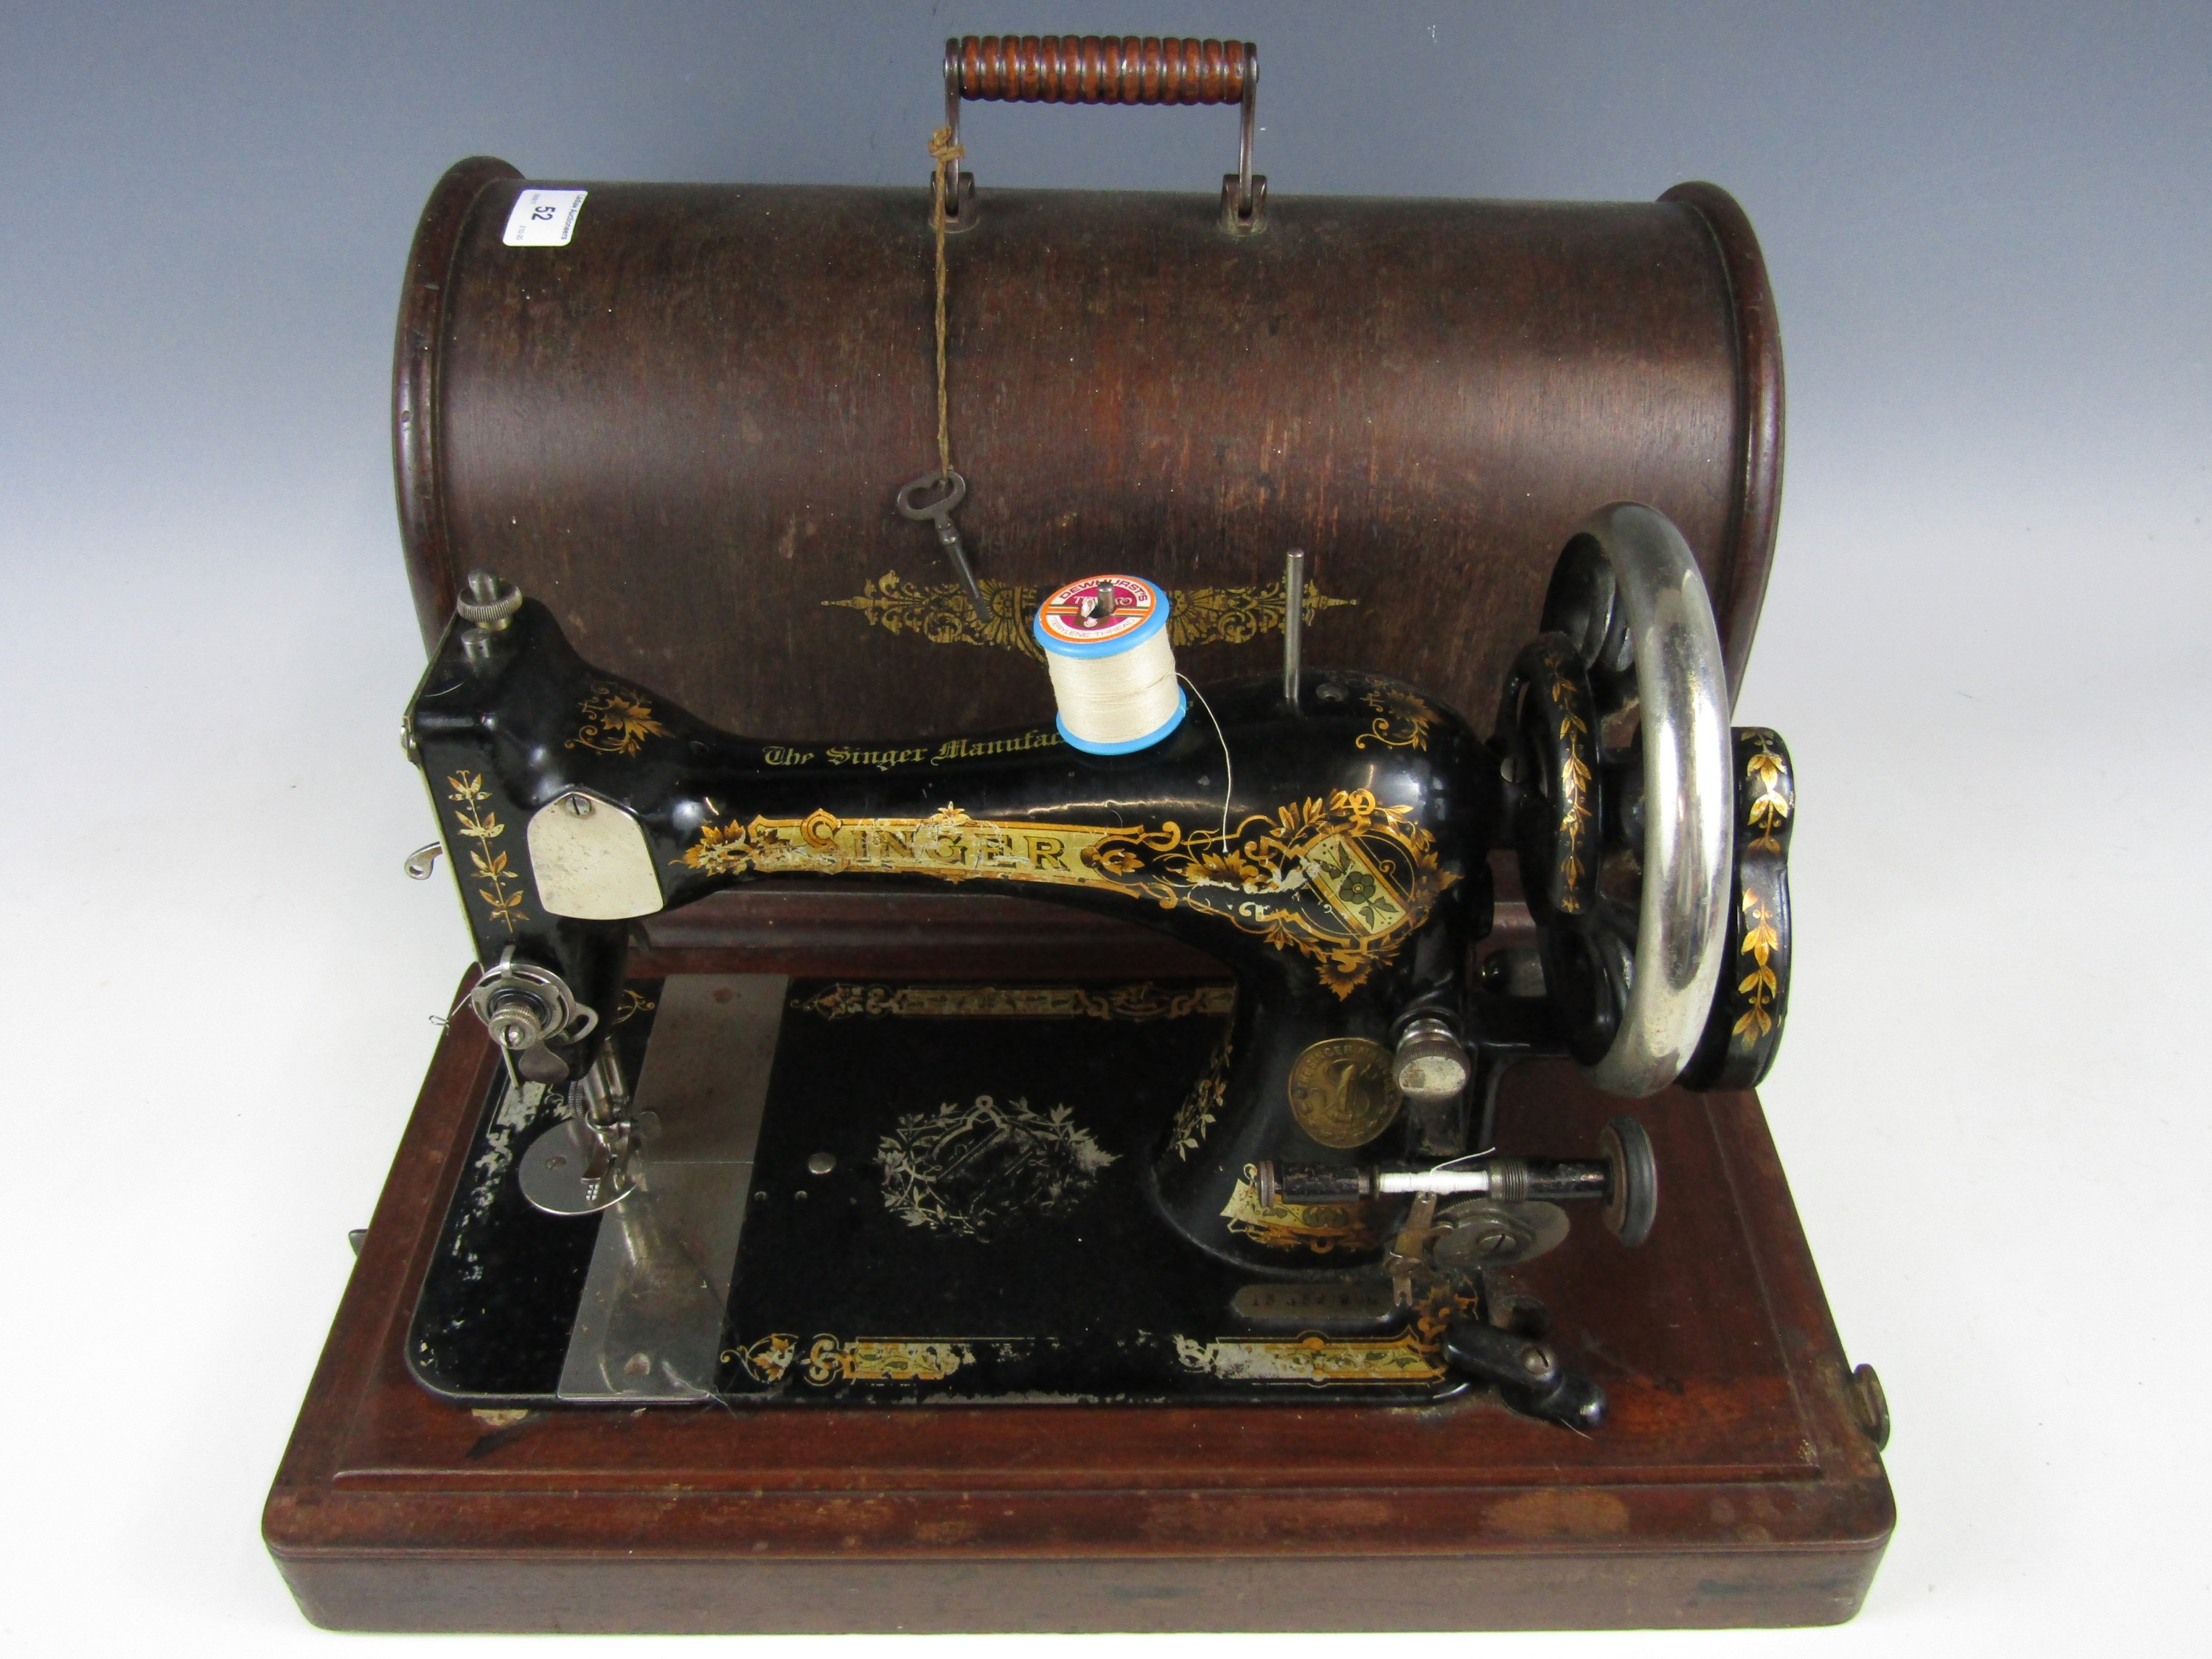 Lot 46 - A late 19th / early 20th Century Singer hand operated sewing machine